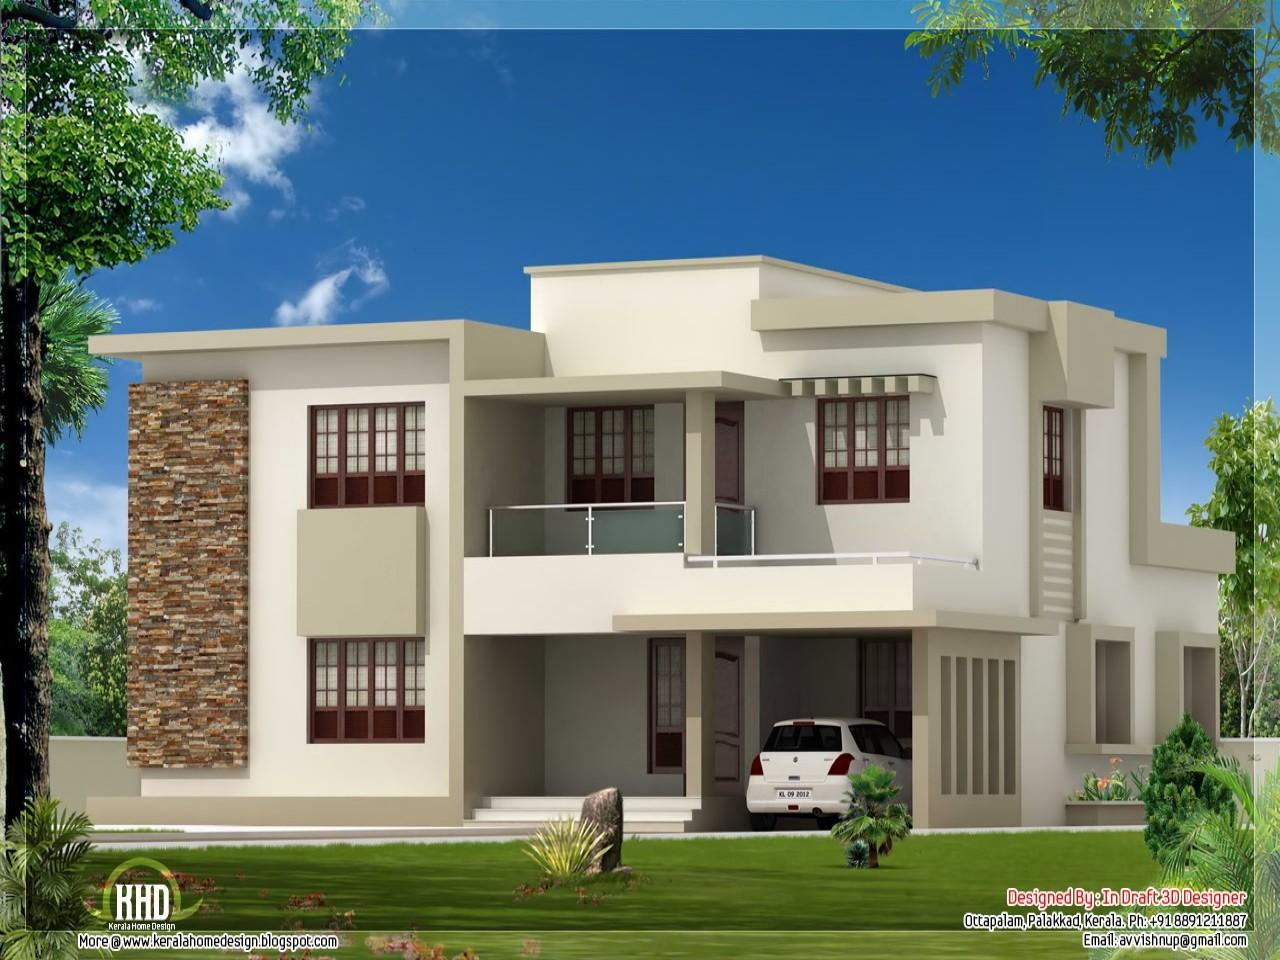 Roofing Designs Houses Home Design Ideas Inspirations